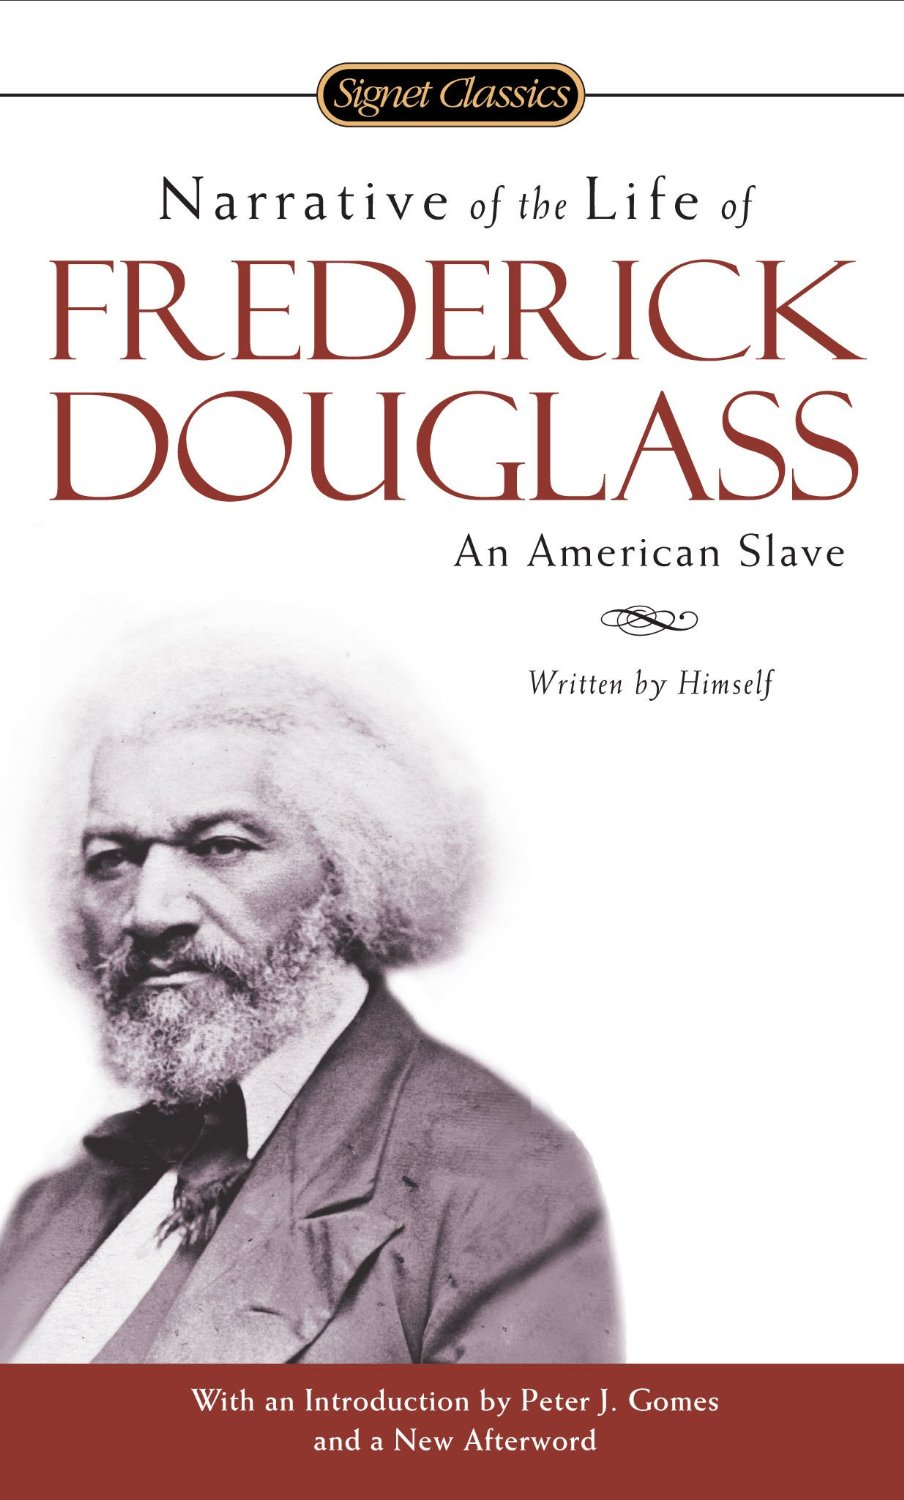 """<i><a href=""""http://www.amazon.com/dp/0486284999/?tag=timecom-20"""" target=""""_blank"""">Narrative of the Life of Frederick Douglass</a></i>                                   By Frederick Douglass, 96 pages. Considered the foremost autobiography of a former slave, Douglass's Narrative was a major credit to the abolitionist cause. It's also one of the strongest testaments to the power of reading."""